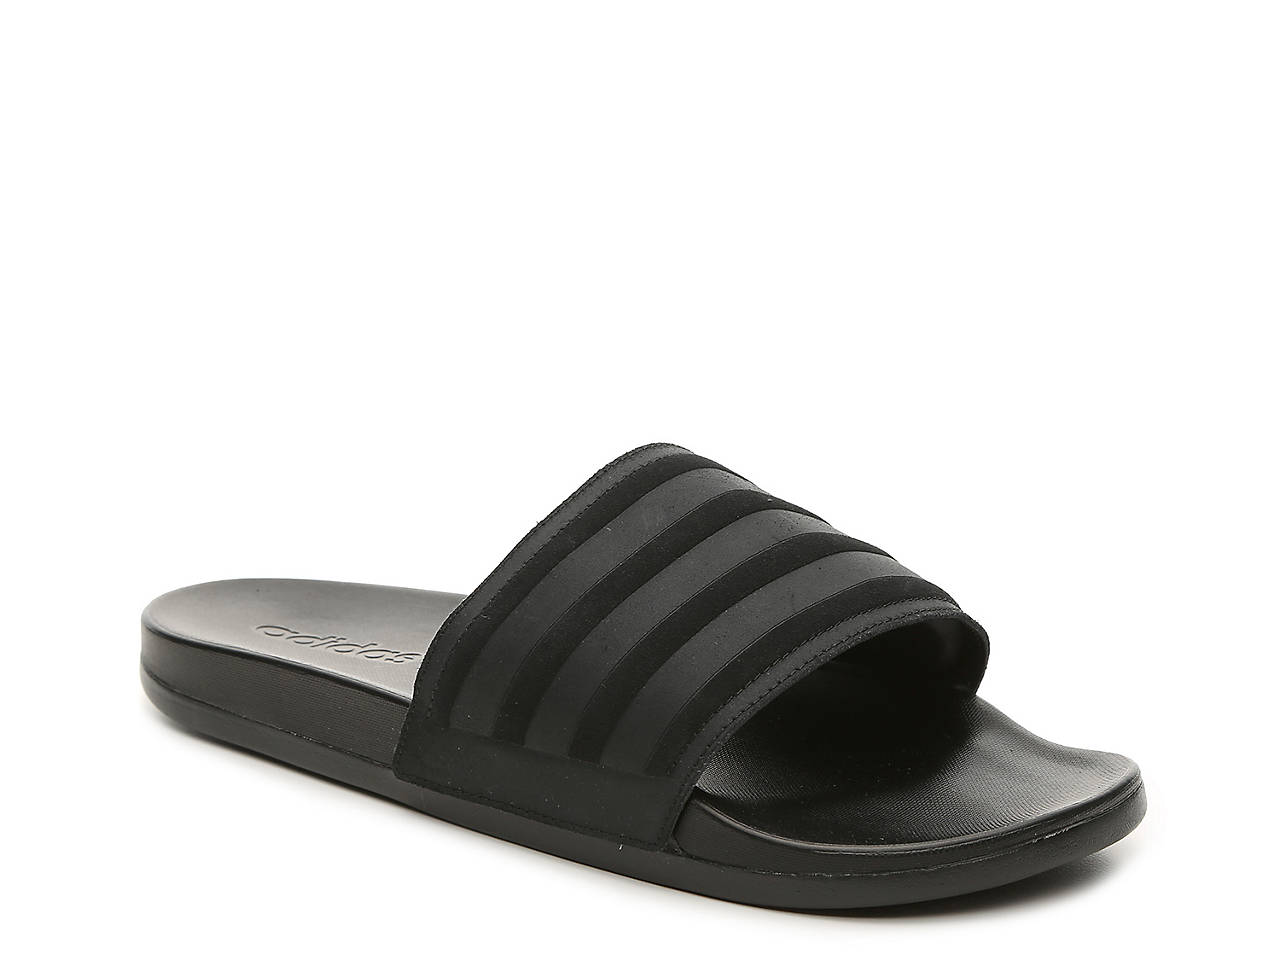 detailed look cdcf0 19480 adidas. Adilette Cloudfoam Explorer Slide Sandal